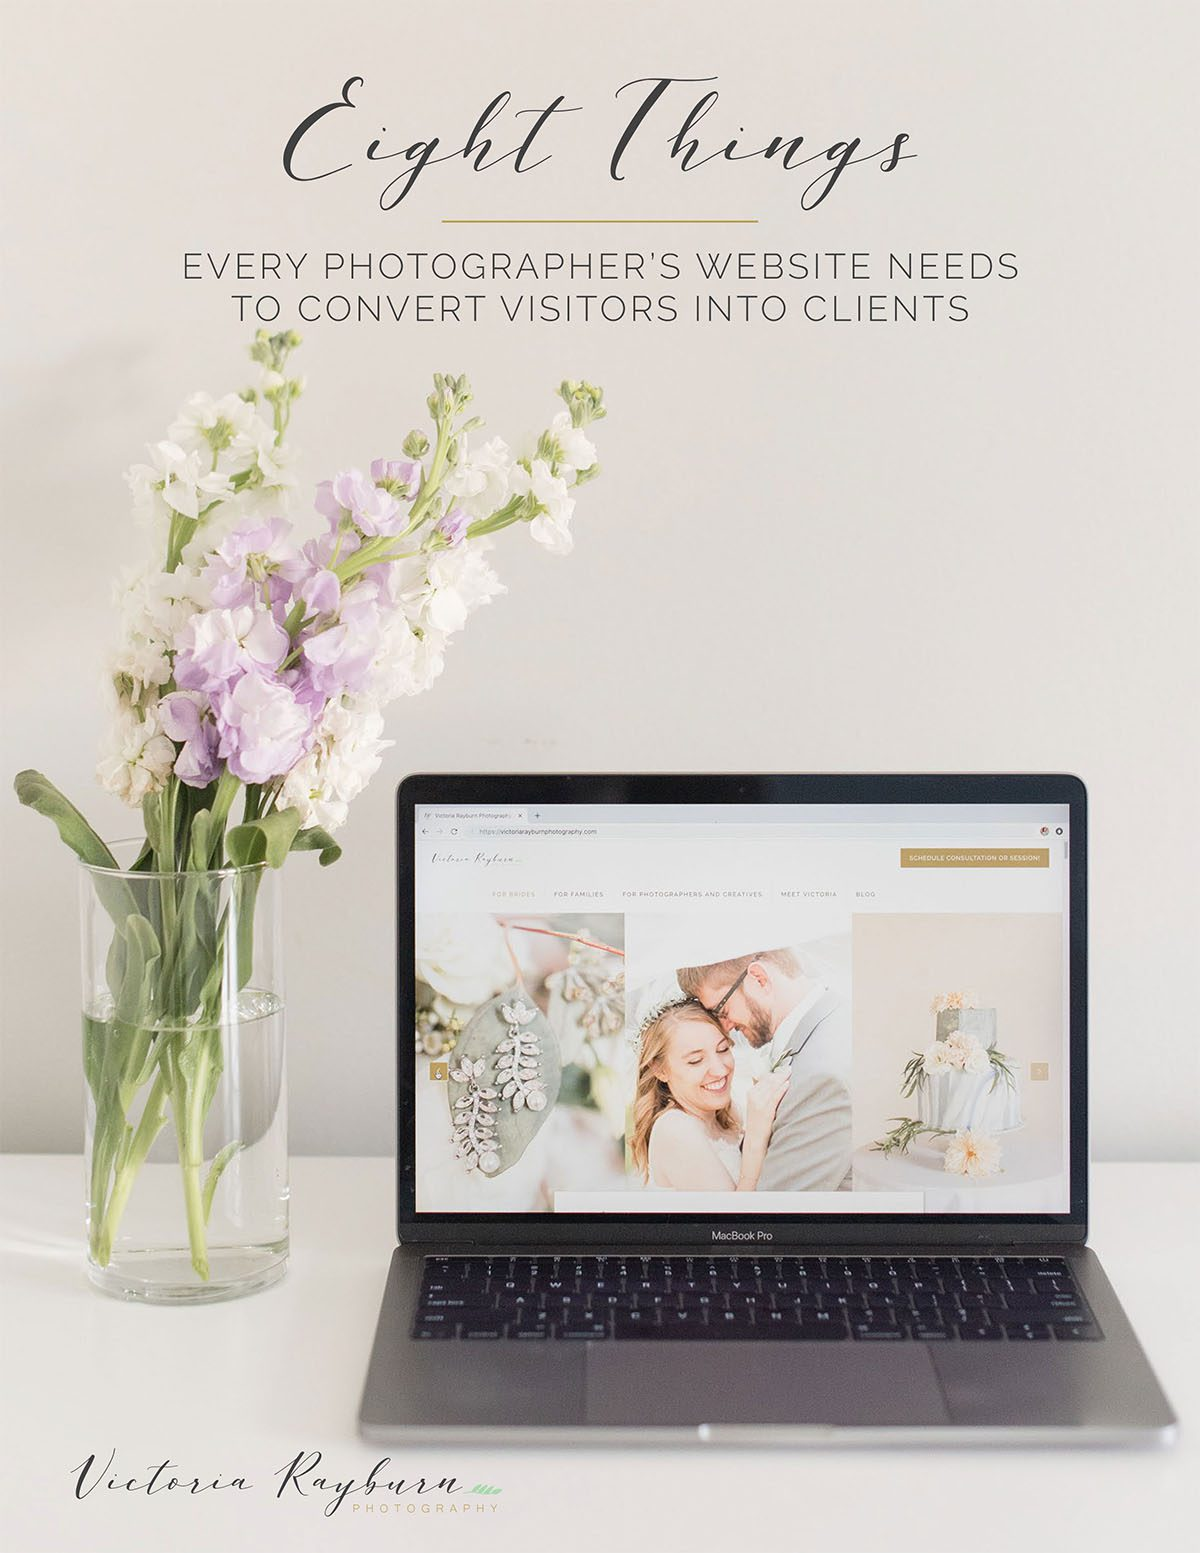 Eight Things Your Photography Website Needs to Convert Website Visitors into Clients